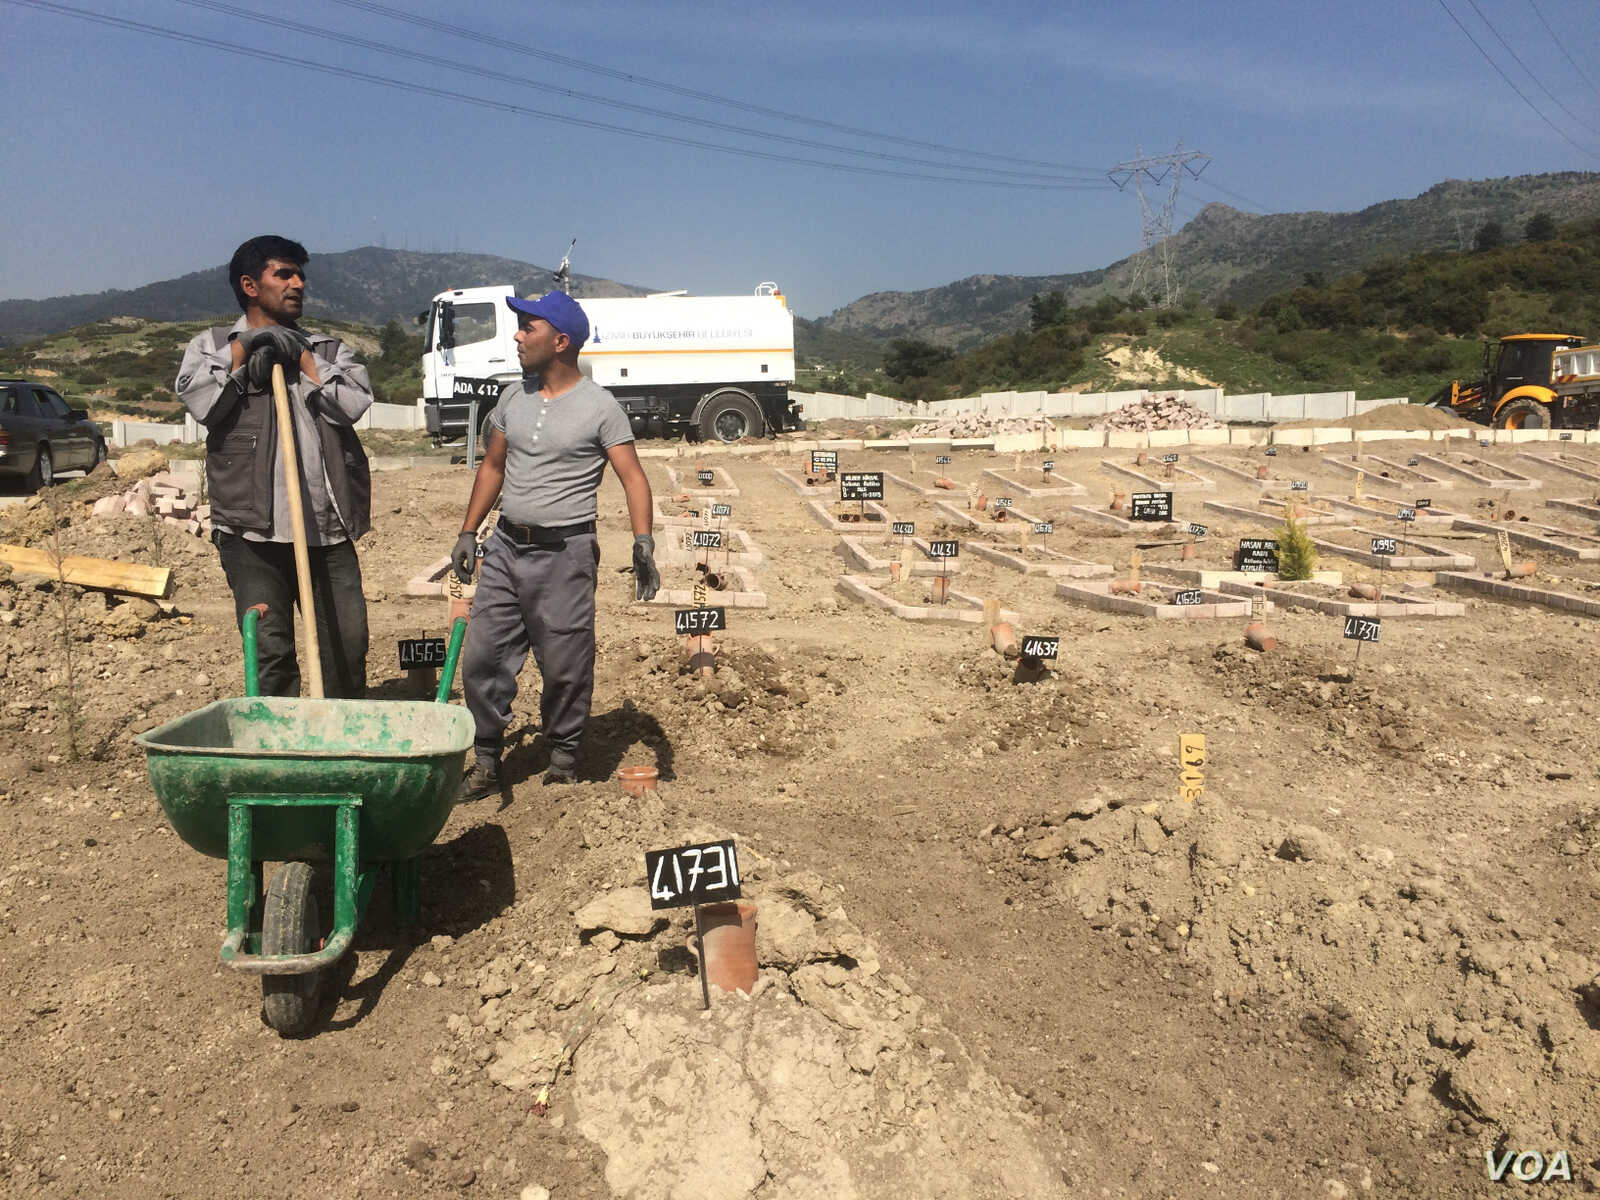 A graveyard in Turkey, where workers bury the mostly unidentified bodies of people who drowned in the sea while attempting to cross into Europe, including children, April 2016. (H. Murdock/VOA) April, 2016.